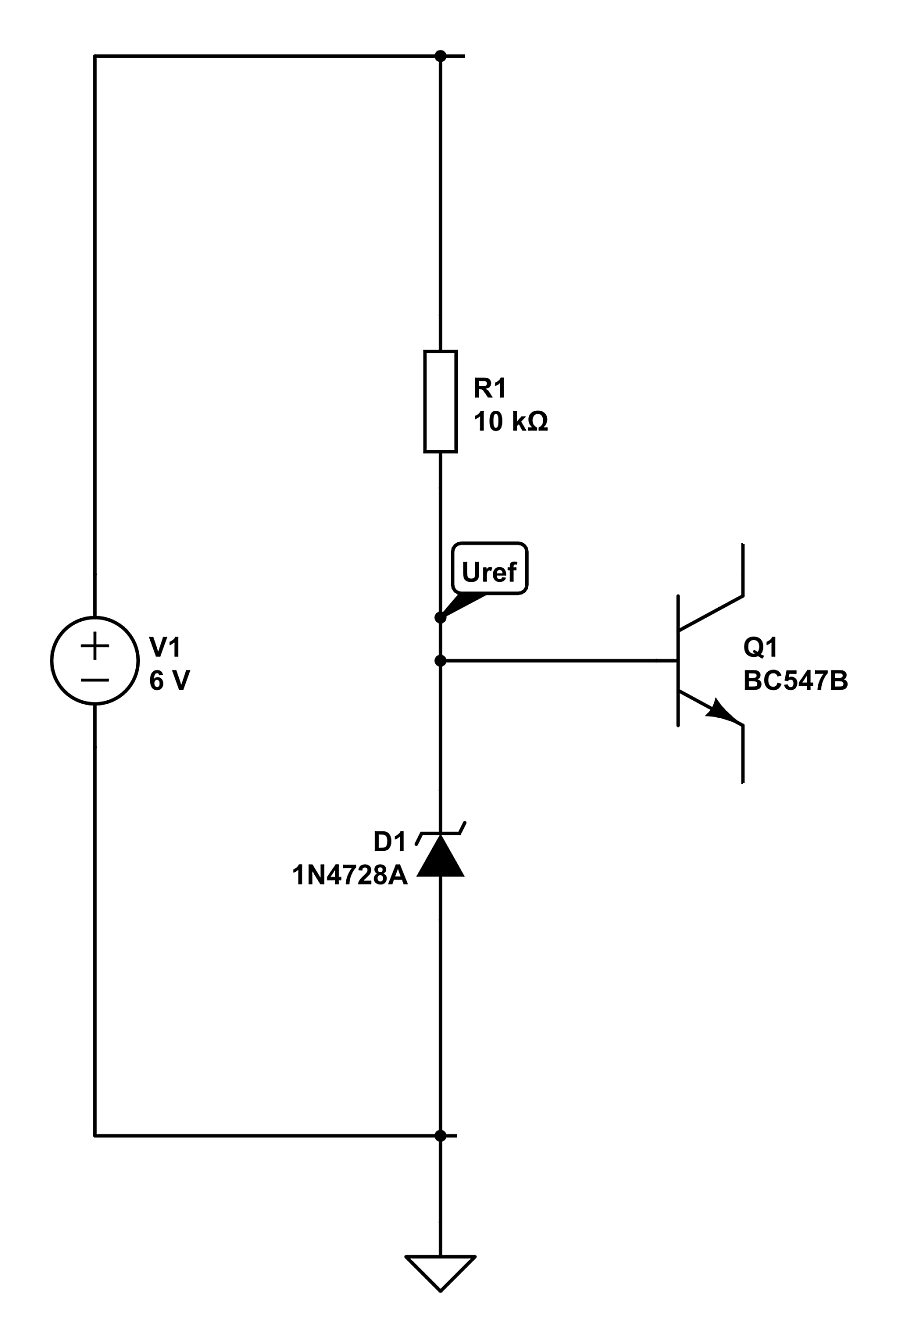 Toms projects a beginners guide to driving leds part 4 the transistor has an interesting property over its base emitter diode indicated by the little arrow in its symbol the voltage drops by about 06 volts biocorpaavc Images